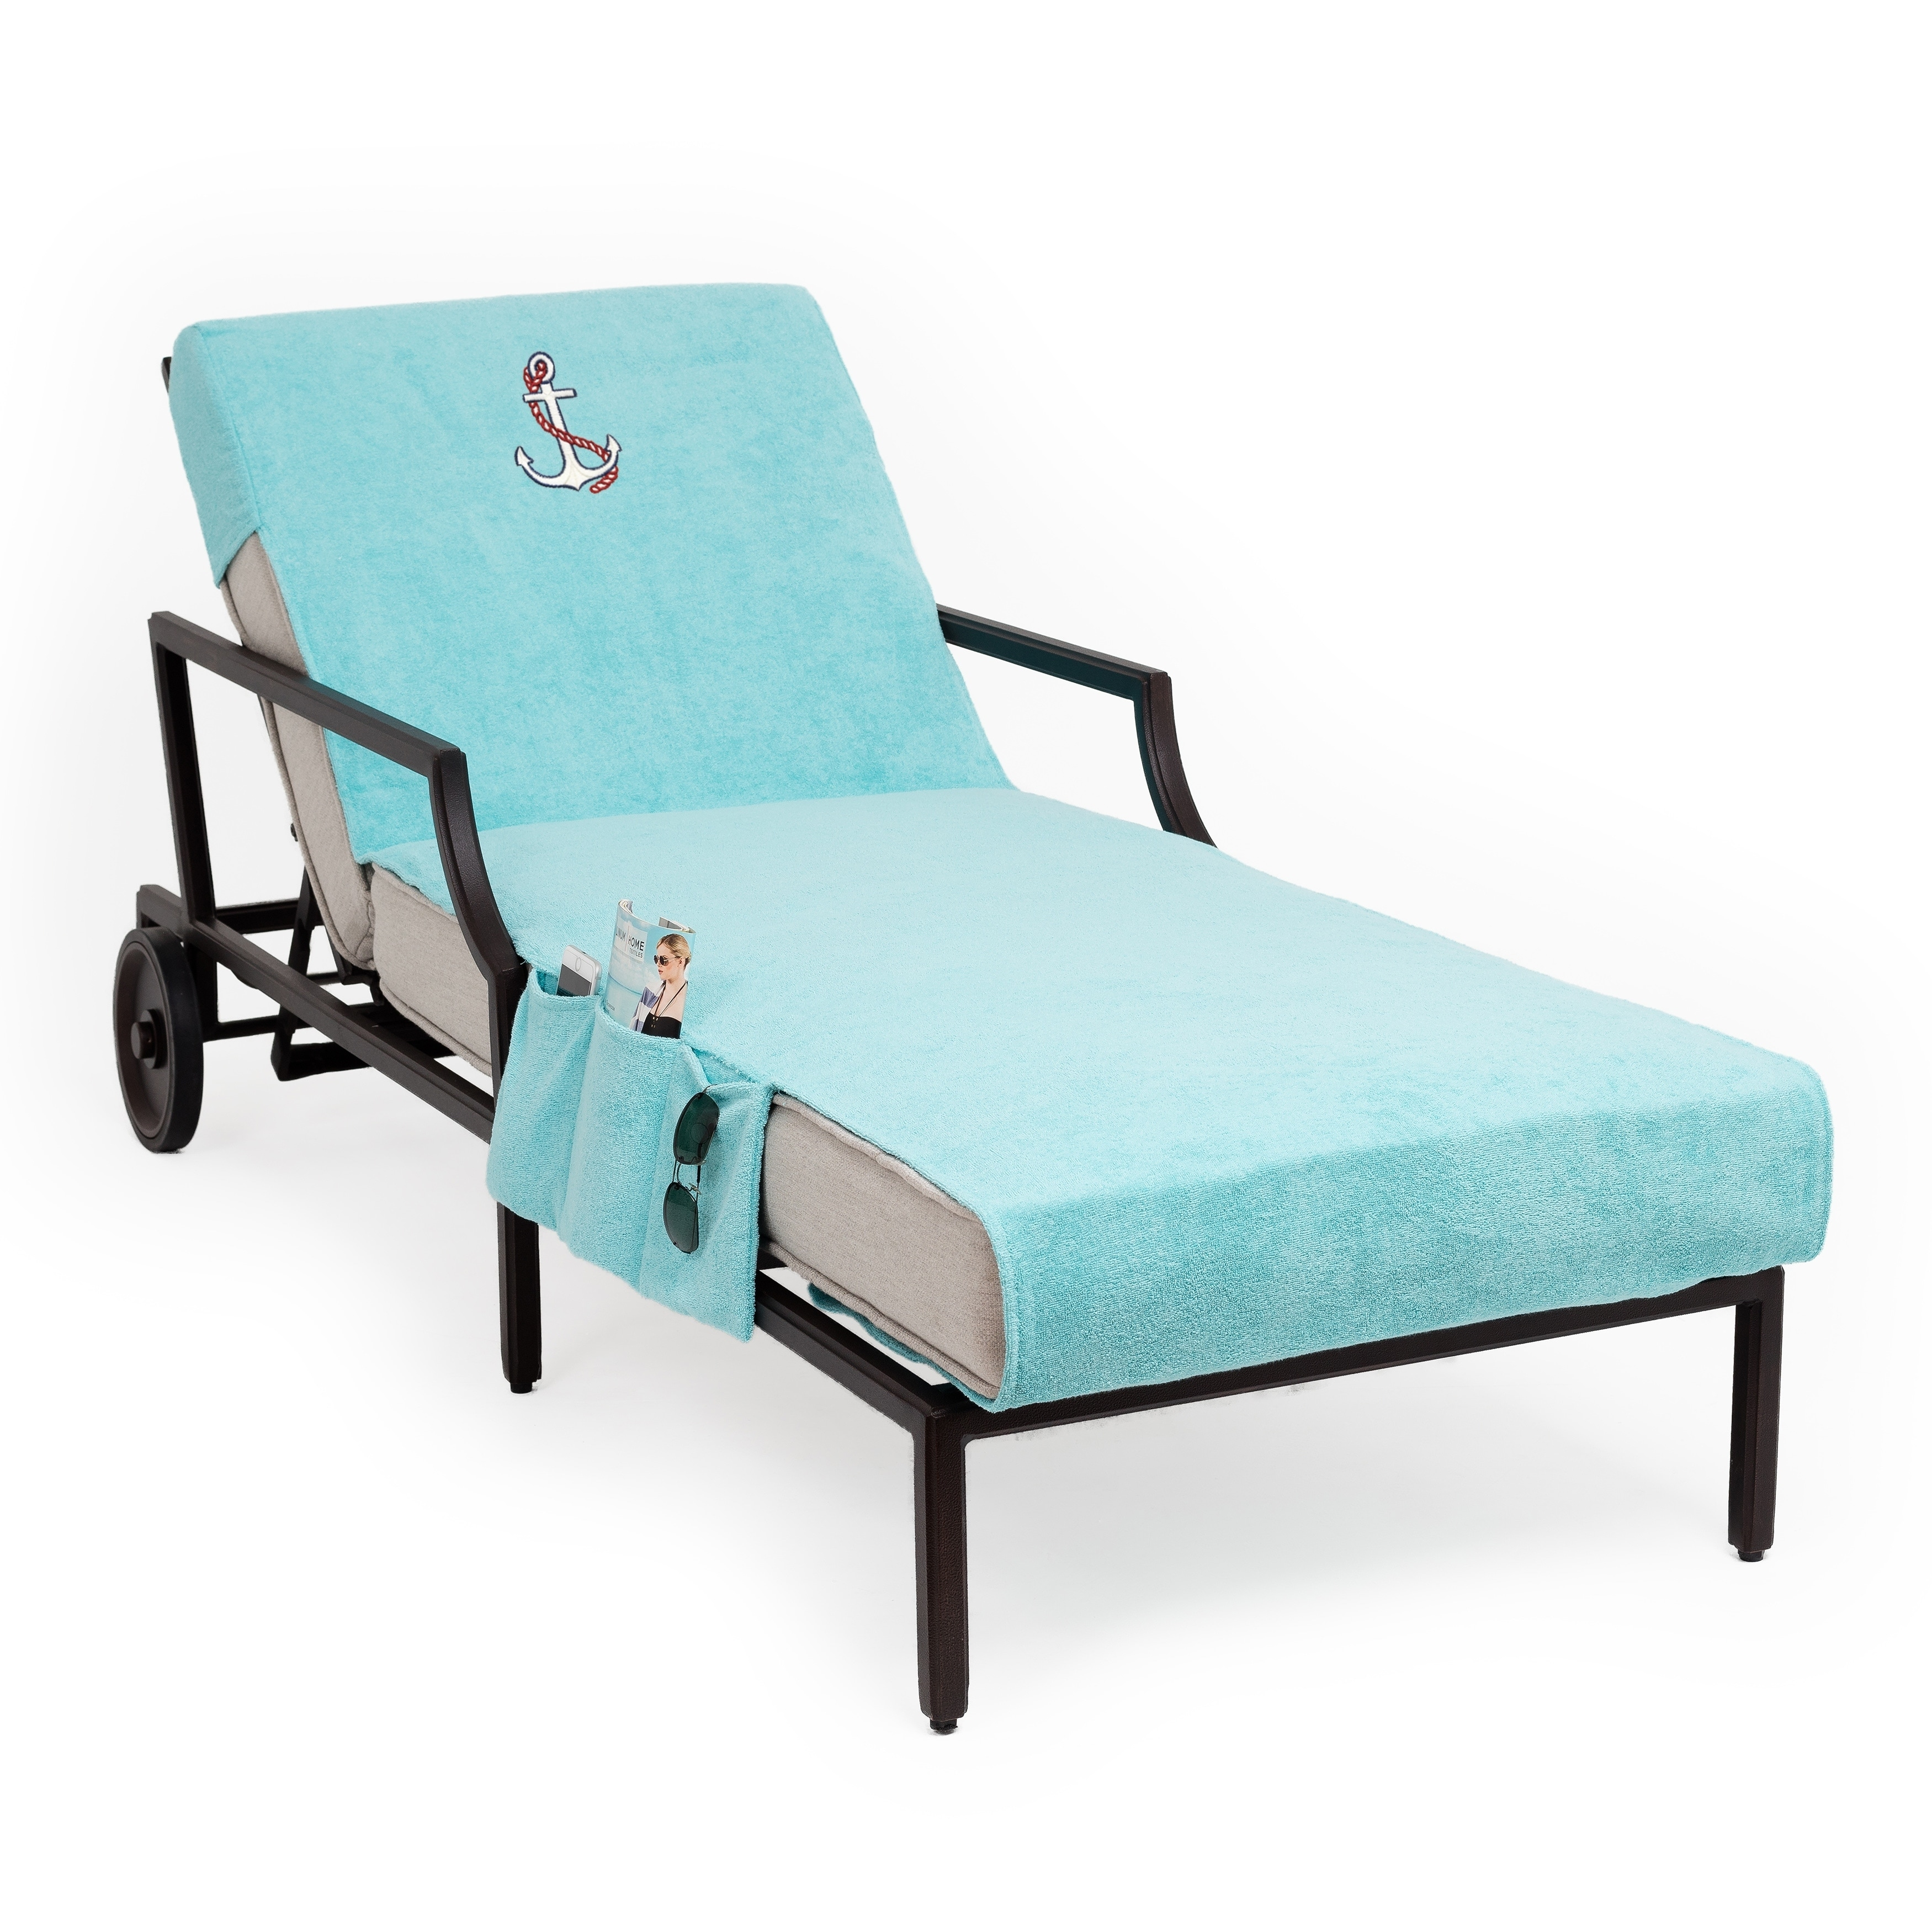 Personalized Chaise Lounge Towels: Authentic Turkish Cotton Embroidered Anchor Aqua Towel